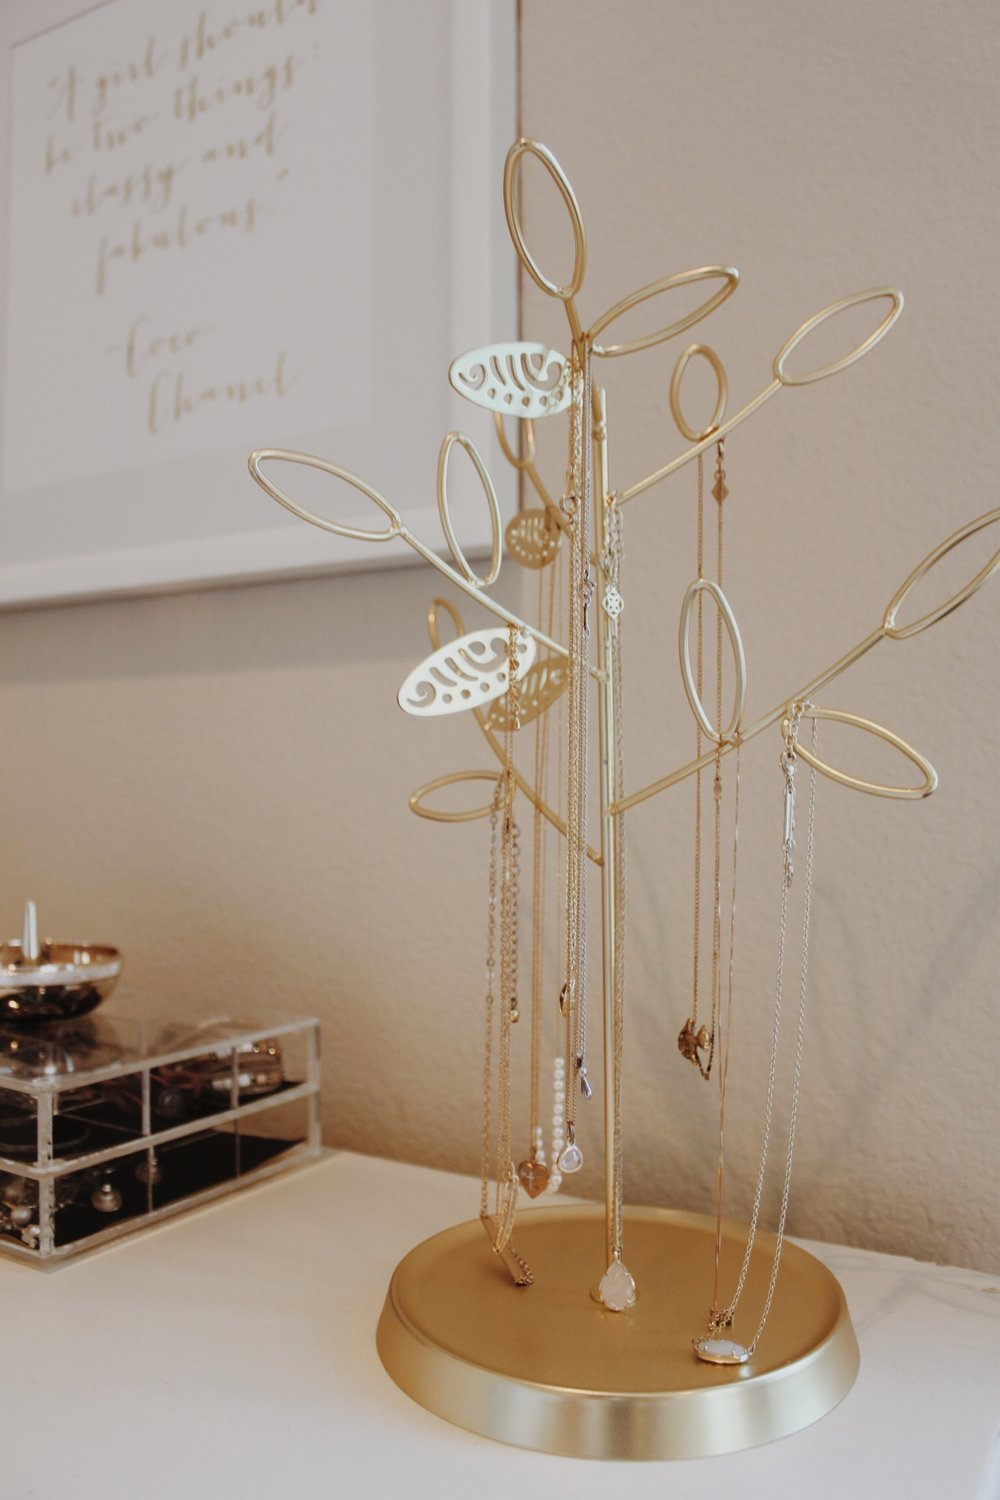 Tree branch jewelry organizer is from Home Goods!